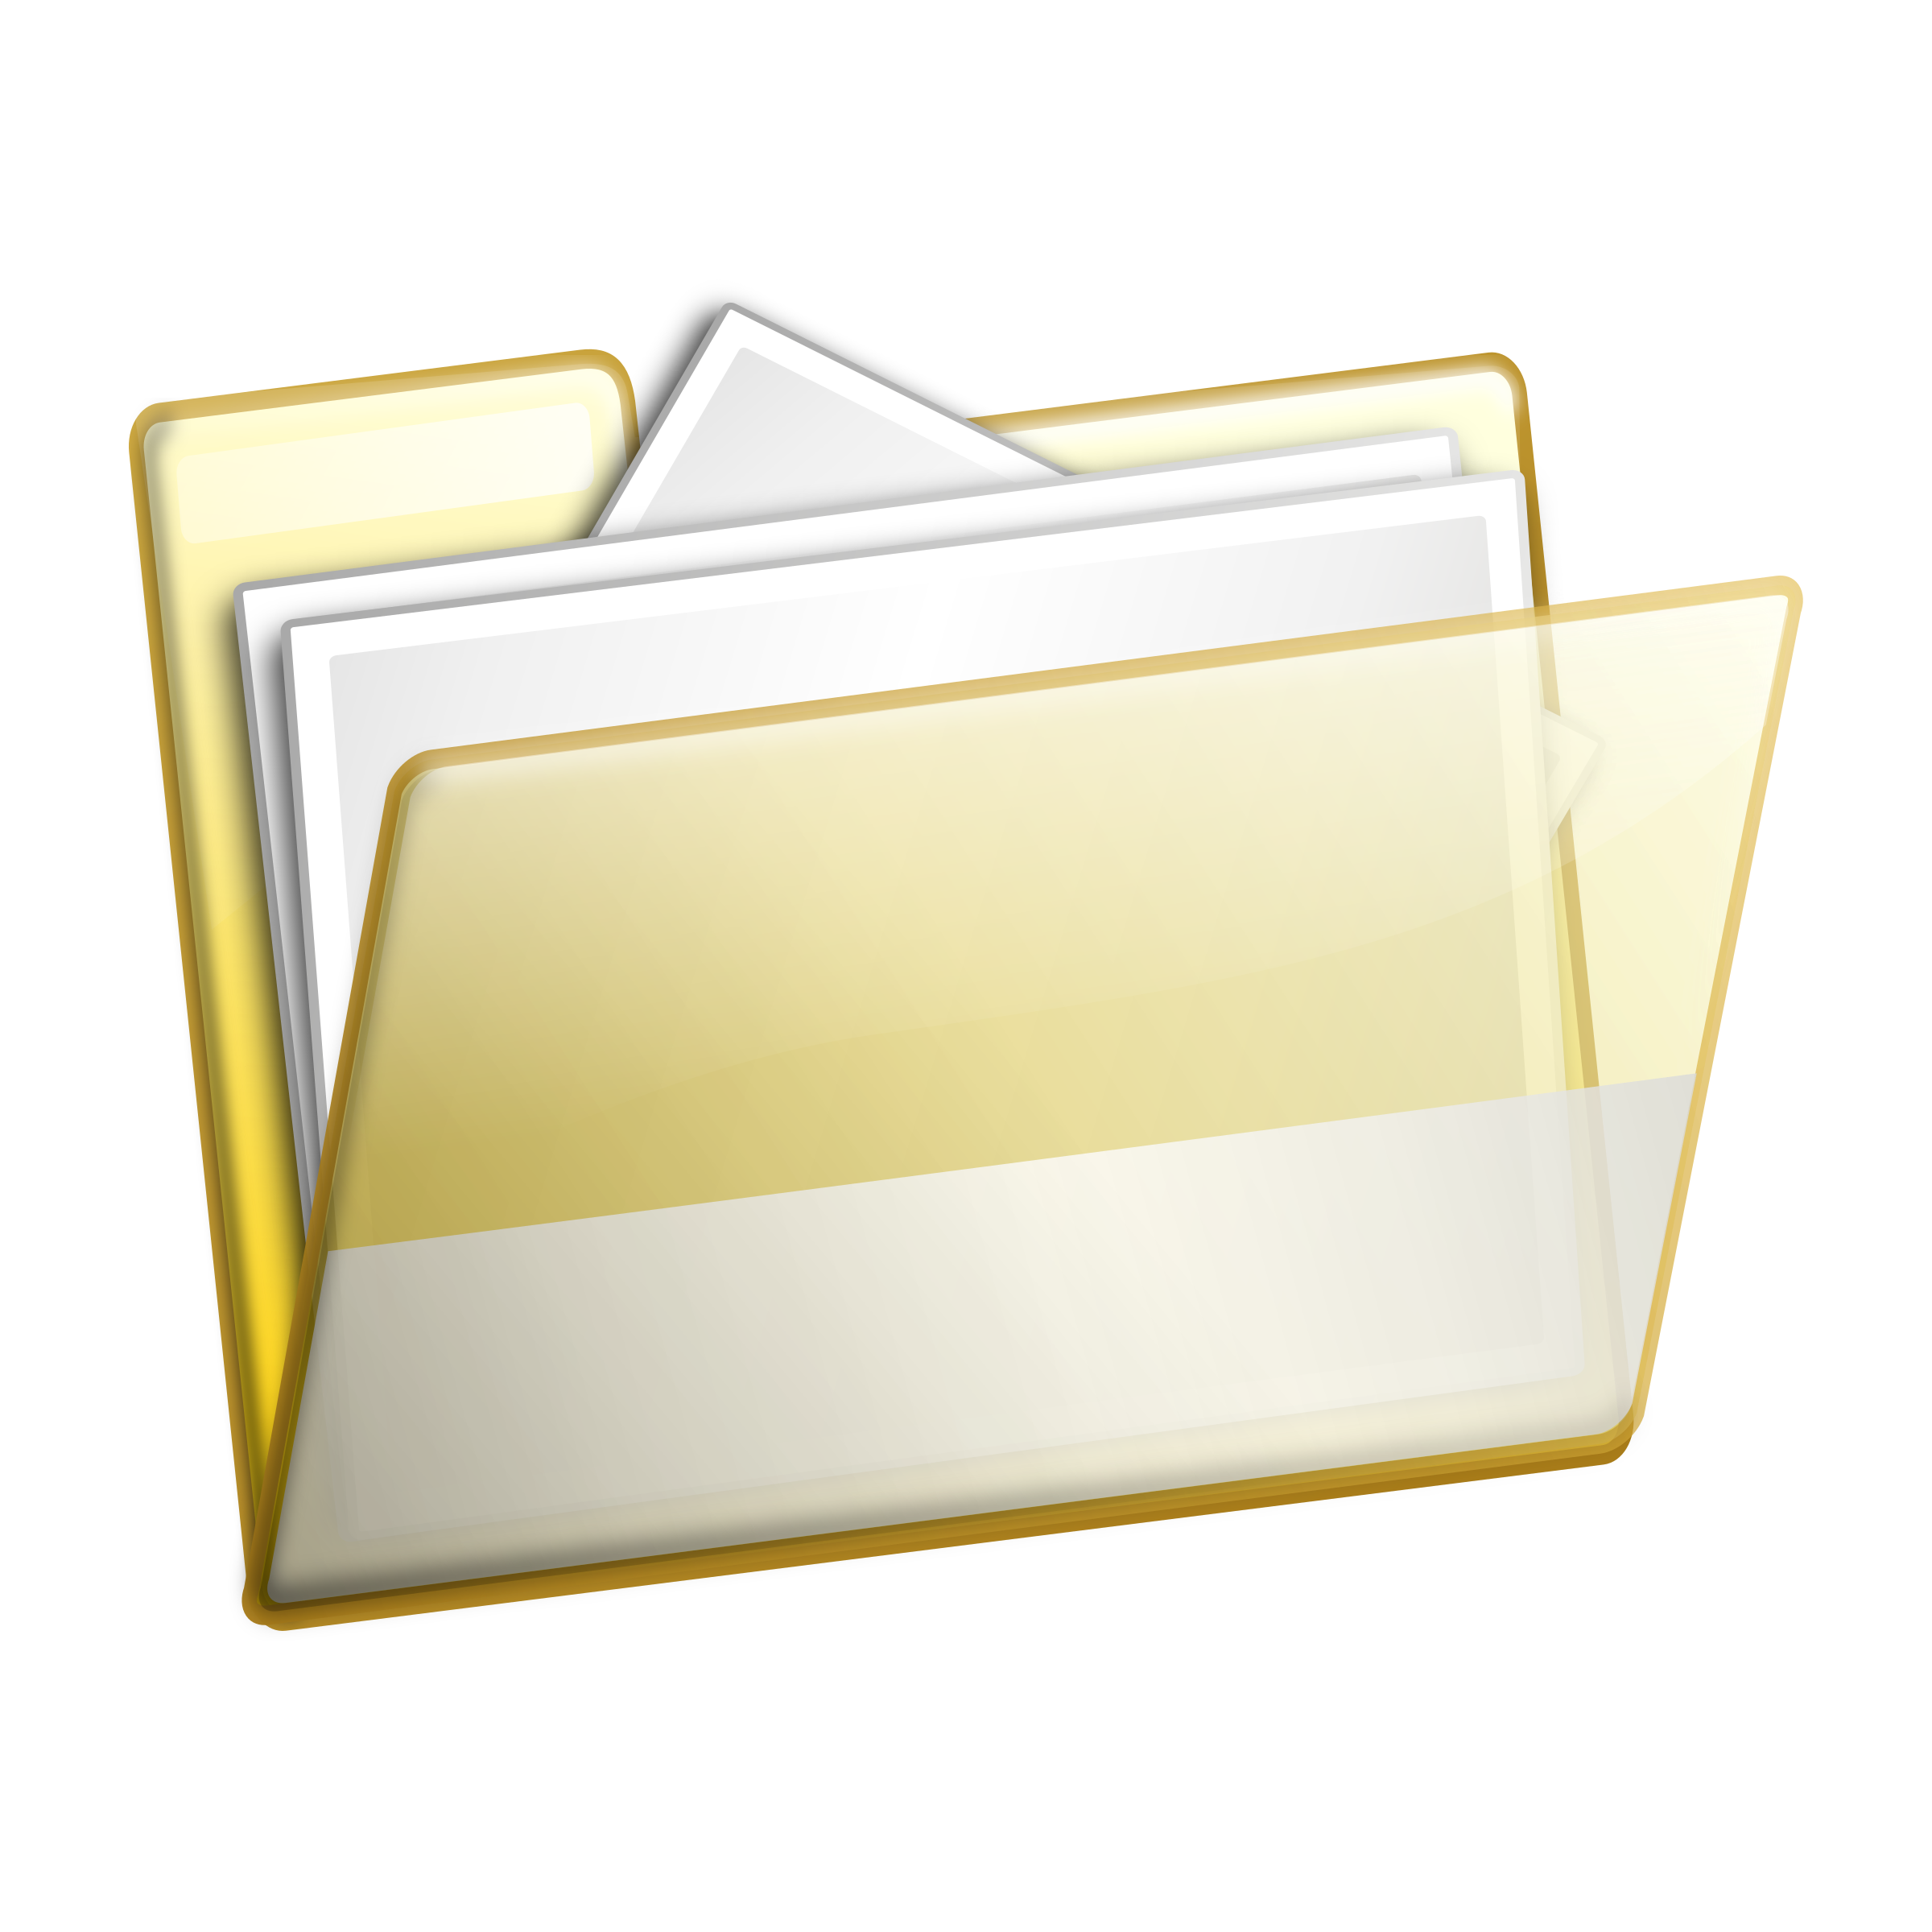 Simple documents icons png. Folder clipart office material